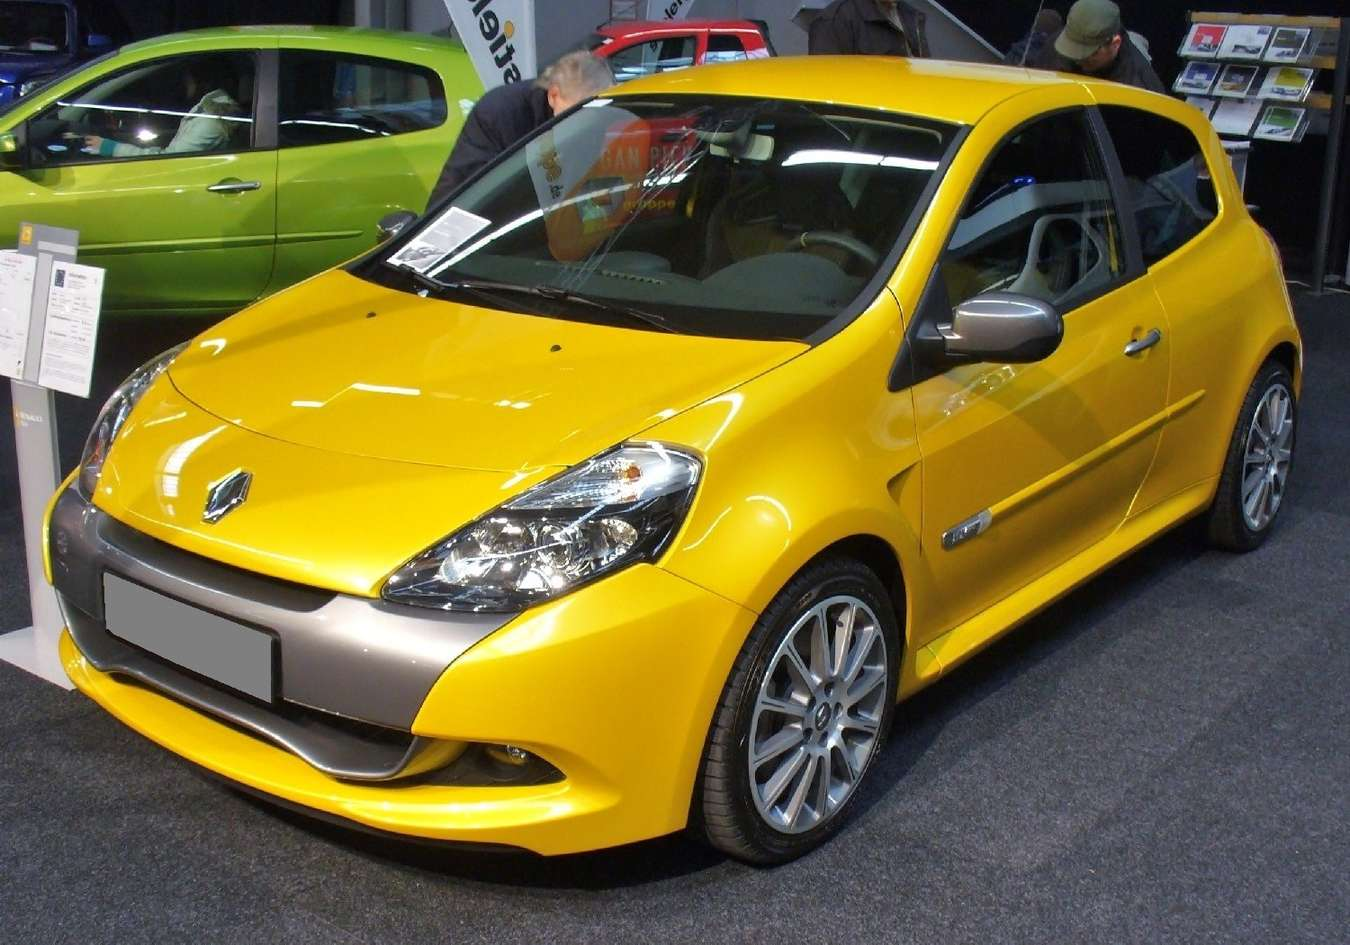 Renault Clio RS #7066683